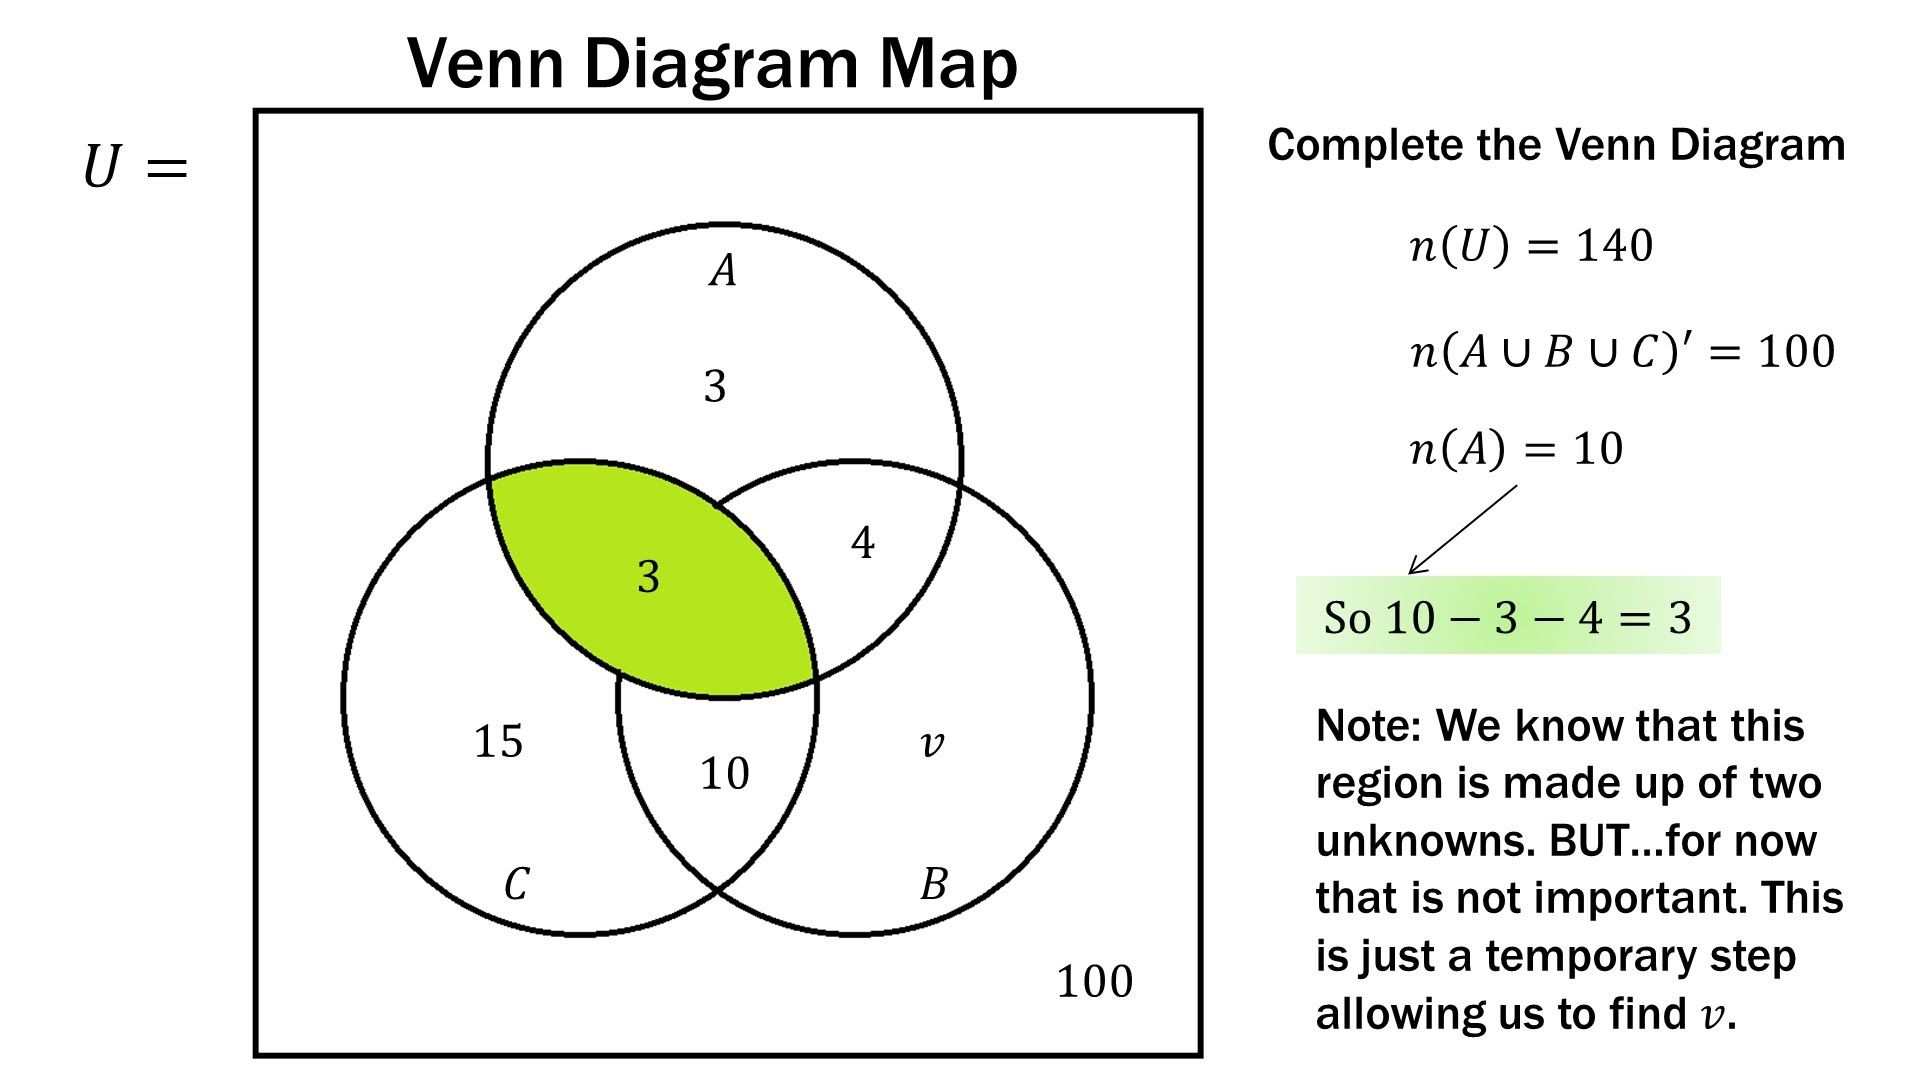 Finite Math Venn Diagram Practice Problems Venn Diagram Venn Diagram Examples Word Problems